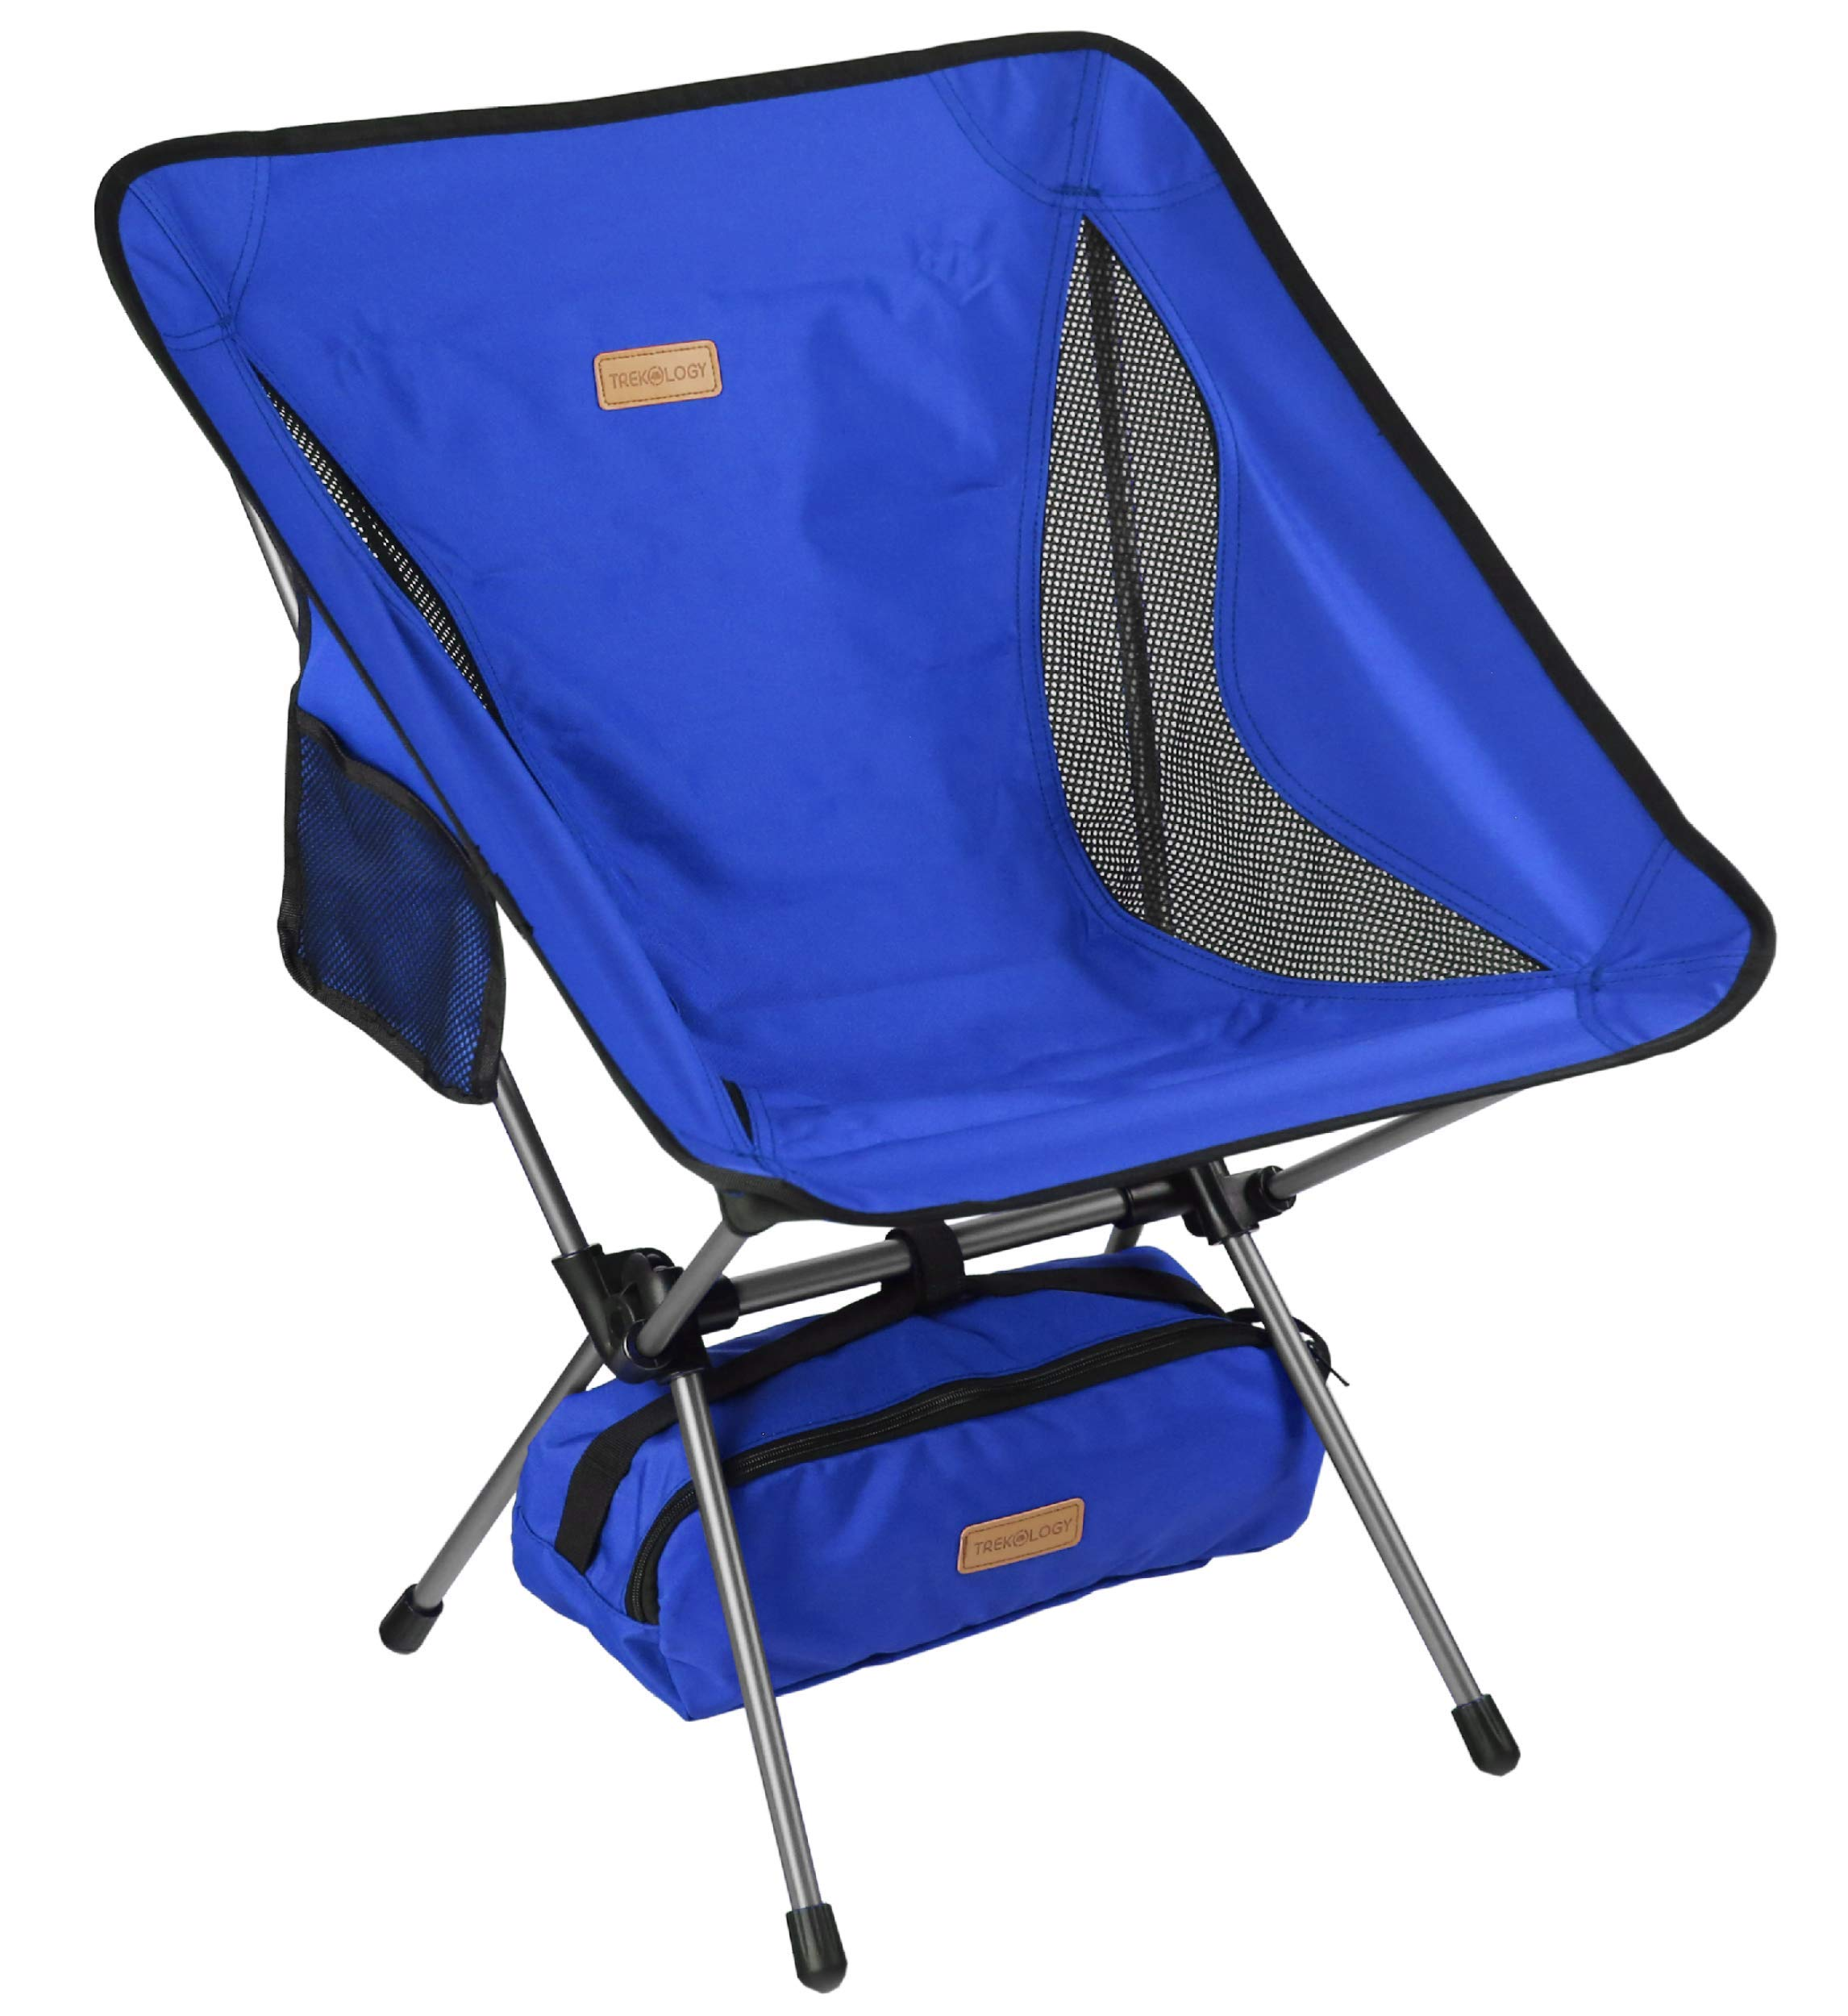 Lightweight Portable Outdoor Chair For Fishing Garden Hiking Backpacking Travel Outside seat Hold up to 220 lbs TAOPE Folding Camping Chair